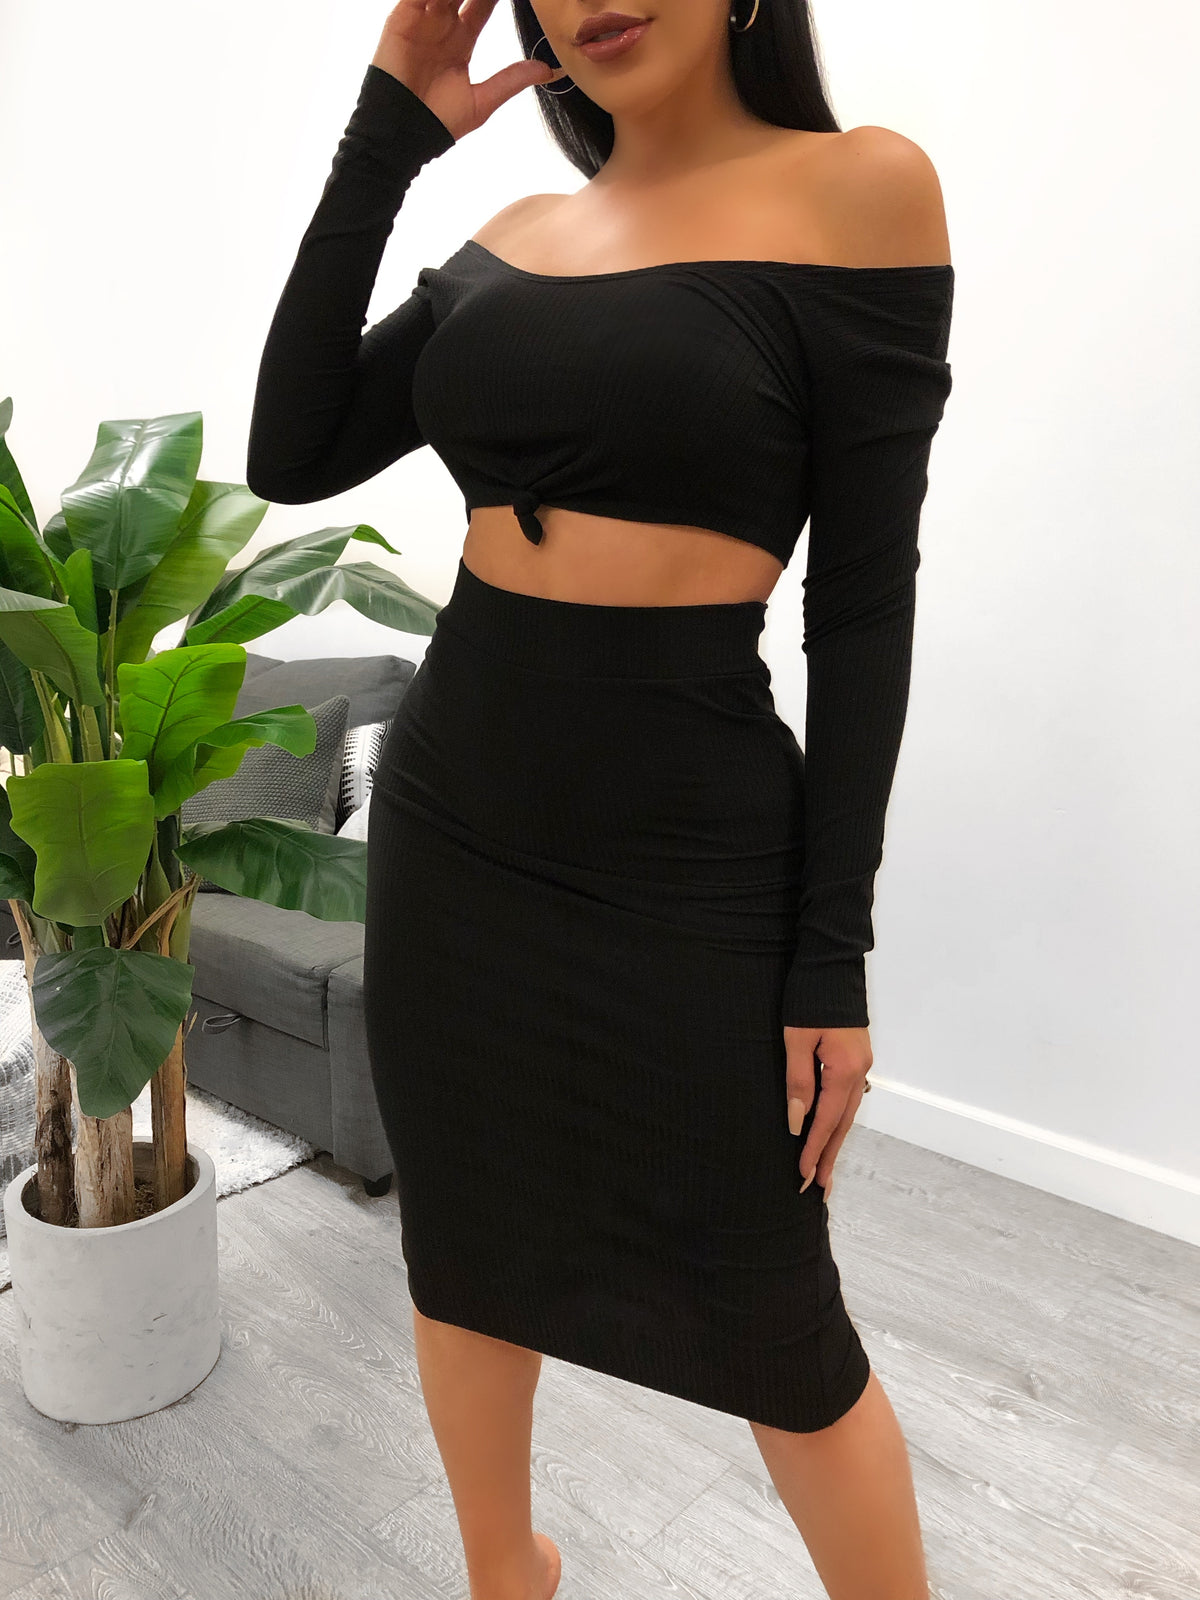 ribbed 2 piece, black 2 piece, off the shoulder, tie top, high waist skirt, midi skirt